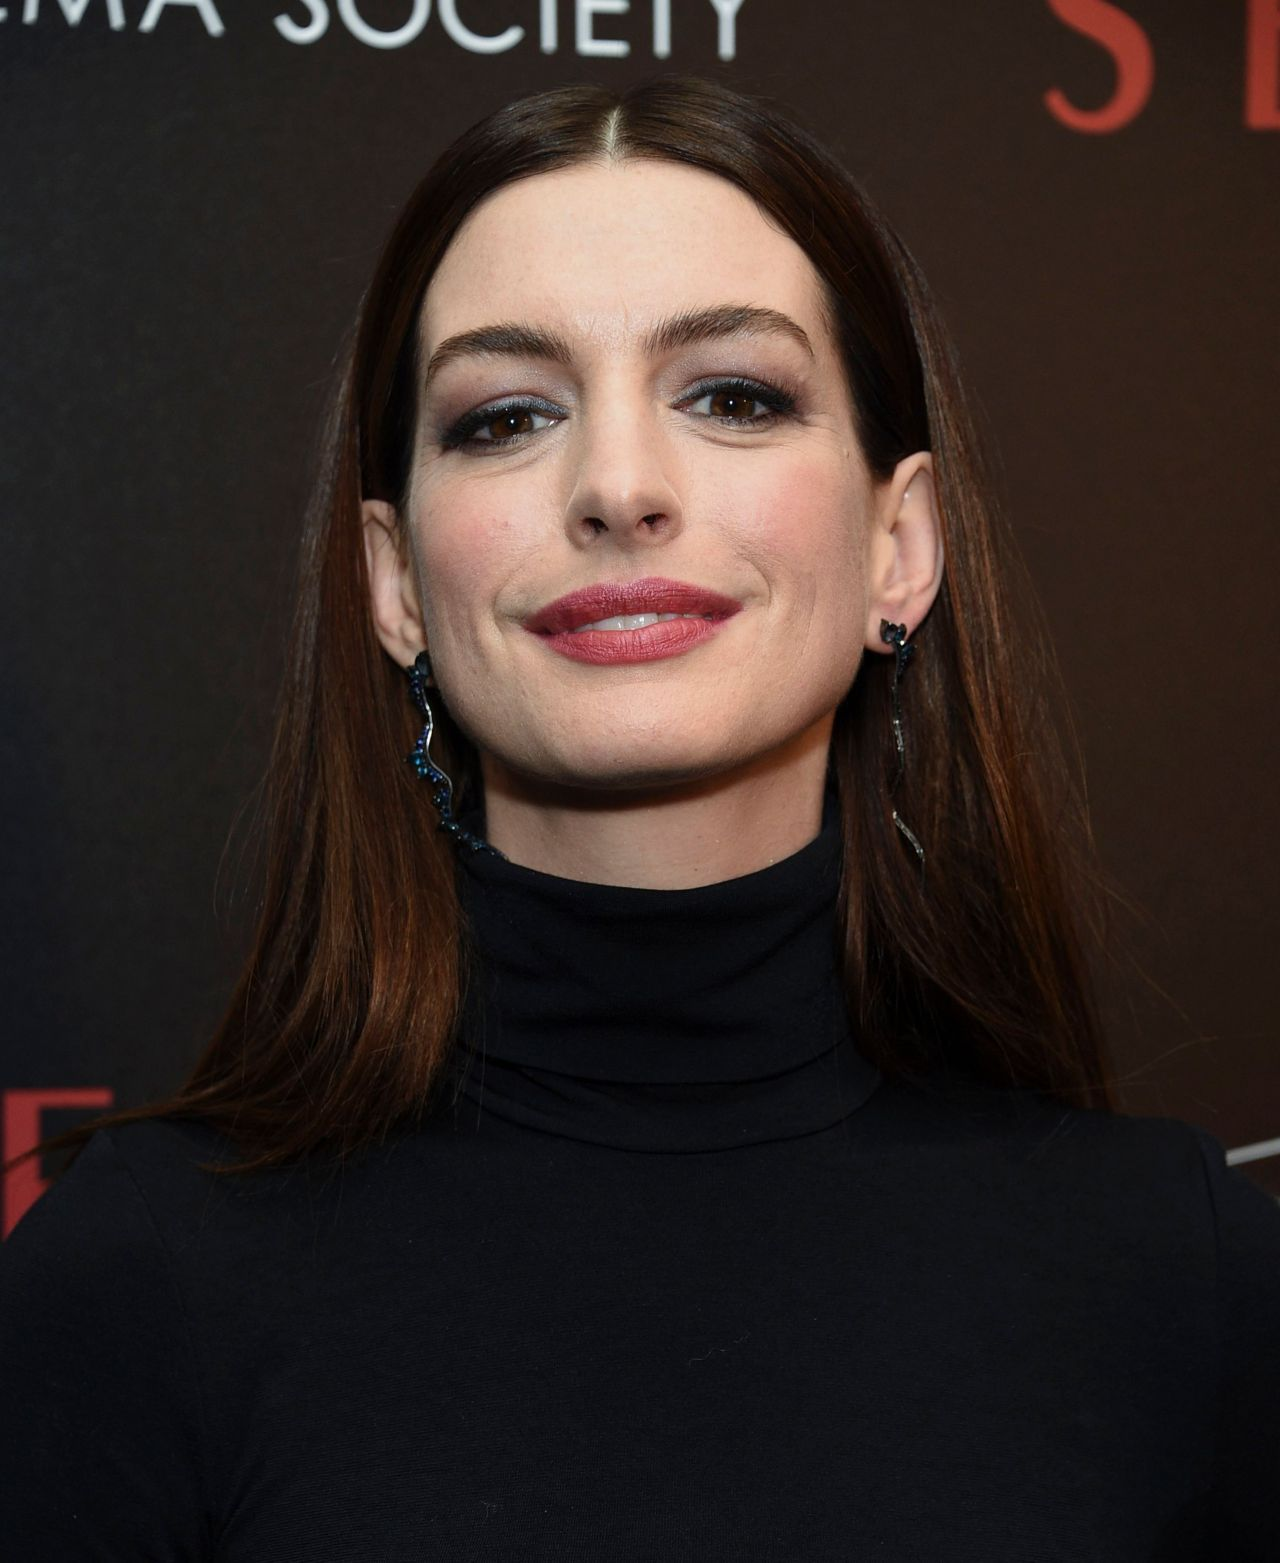 """Anne Hathaway At The Hustle Premiere In Hollywood: """"Serenity"""" Premiere In New York"""